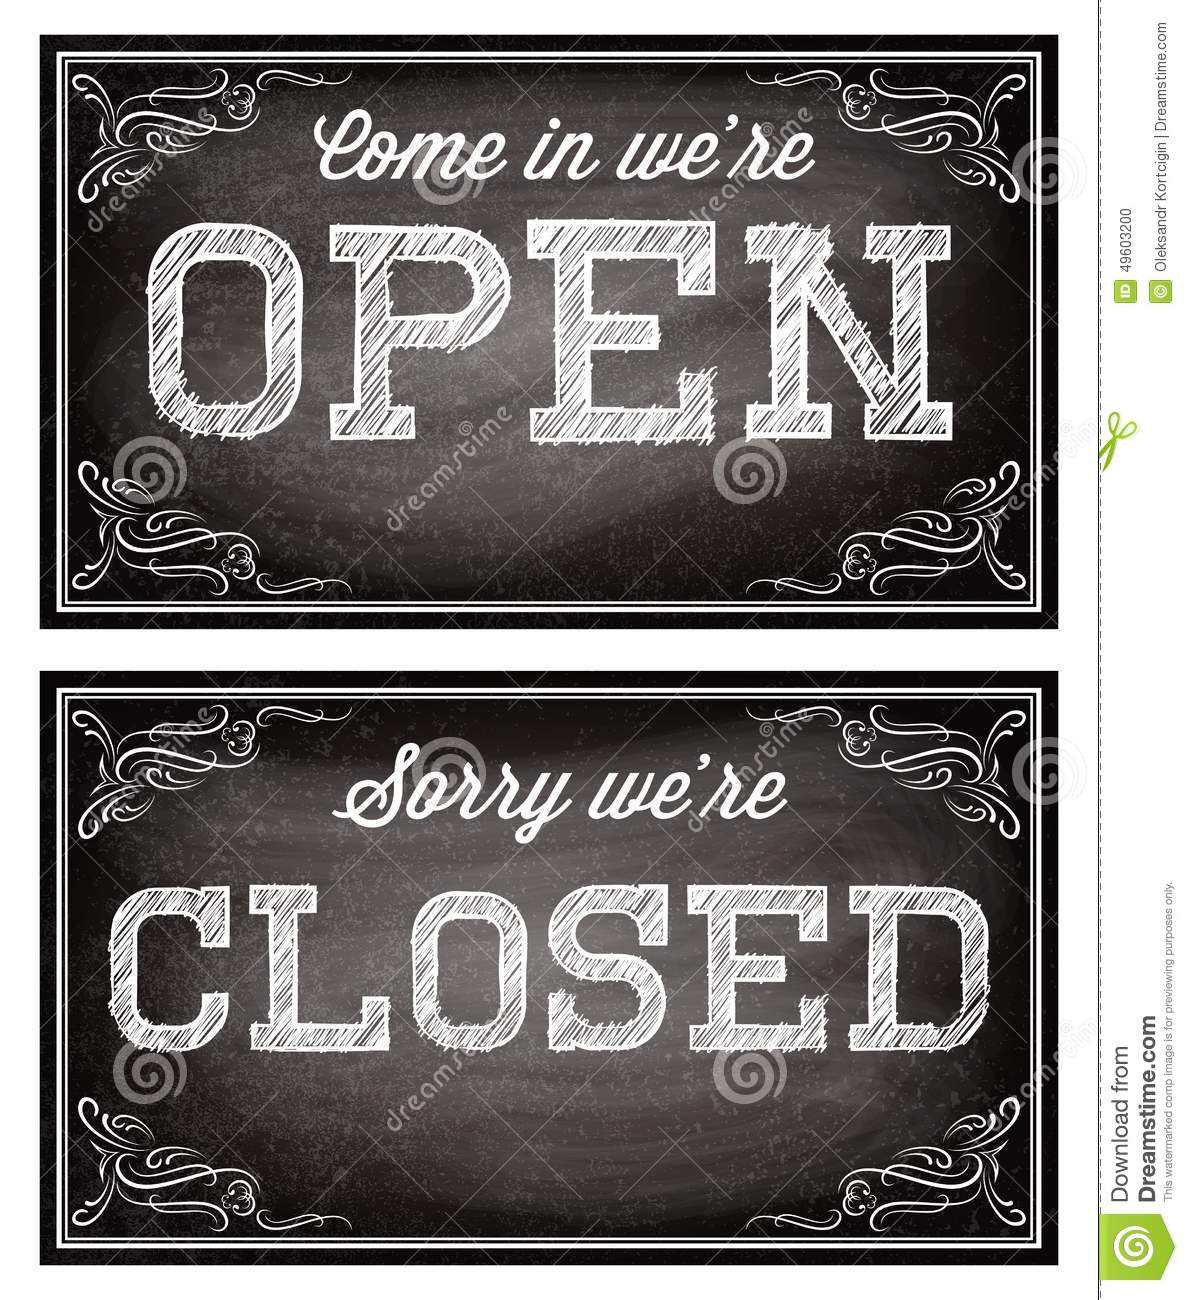 Templates for open and closed signboards retro style stock for Open closed sign template